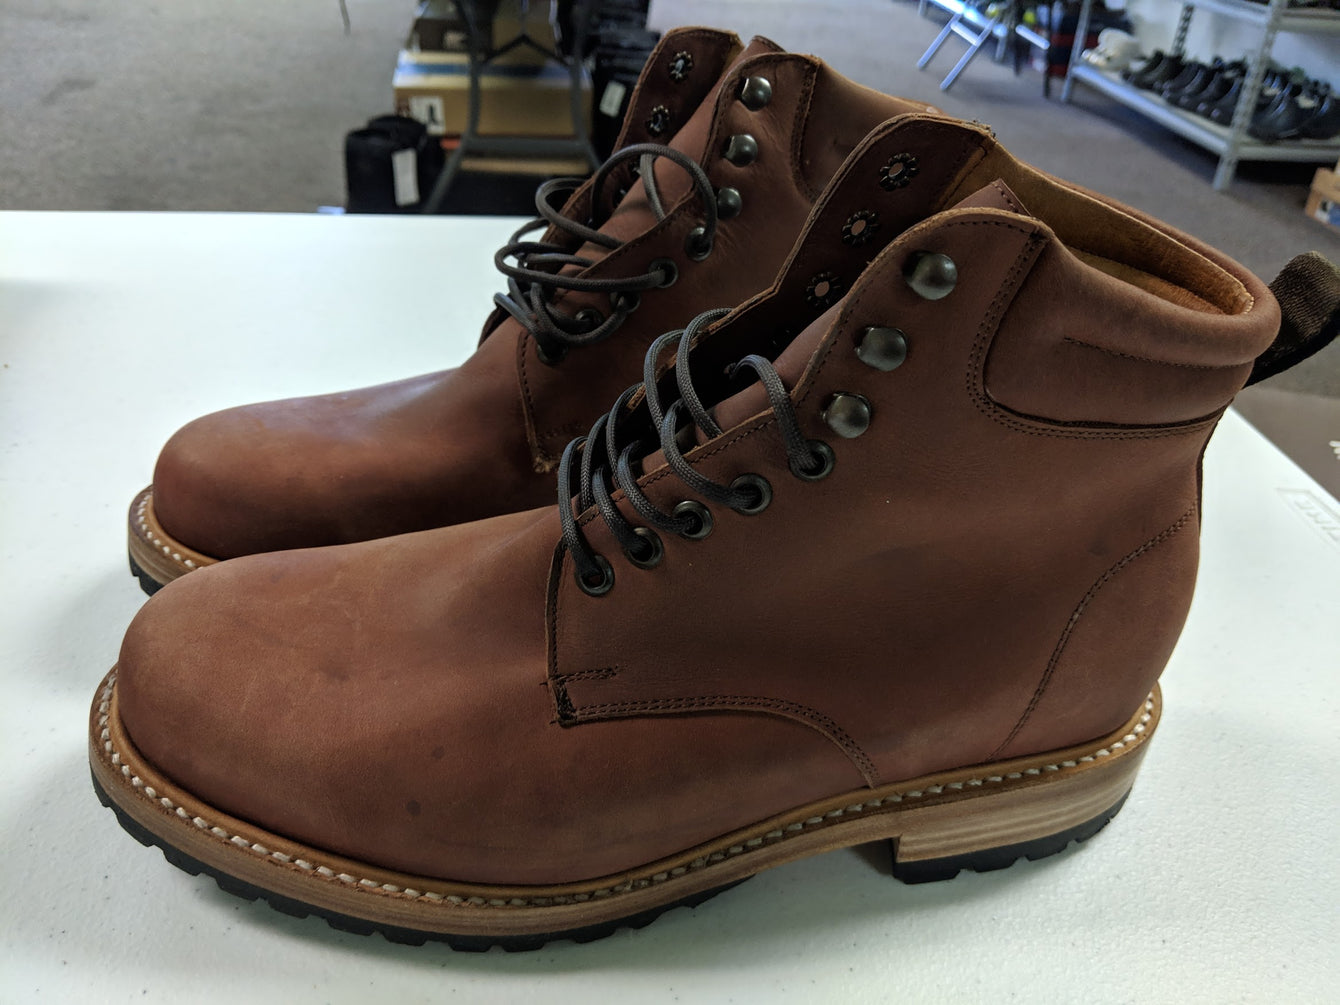 Shiloh - Rust Brown Size 9 Leather Mens Boots